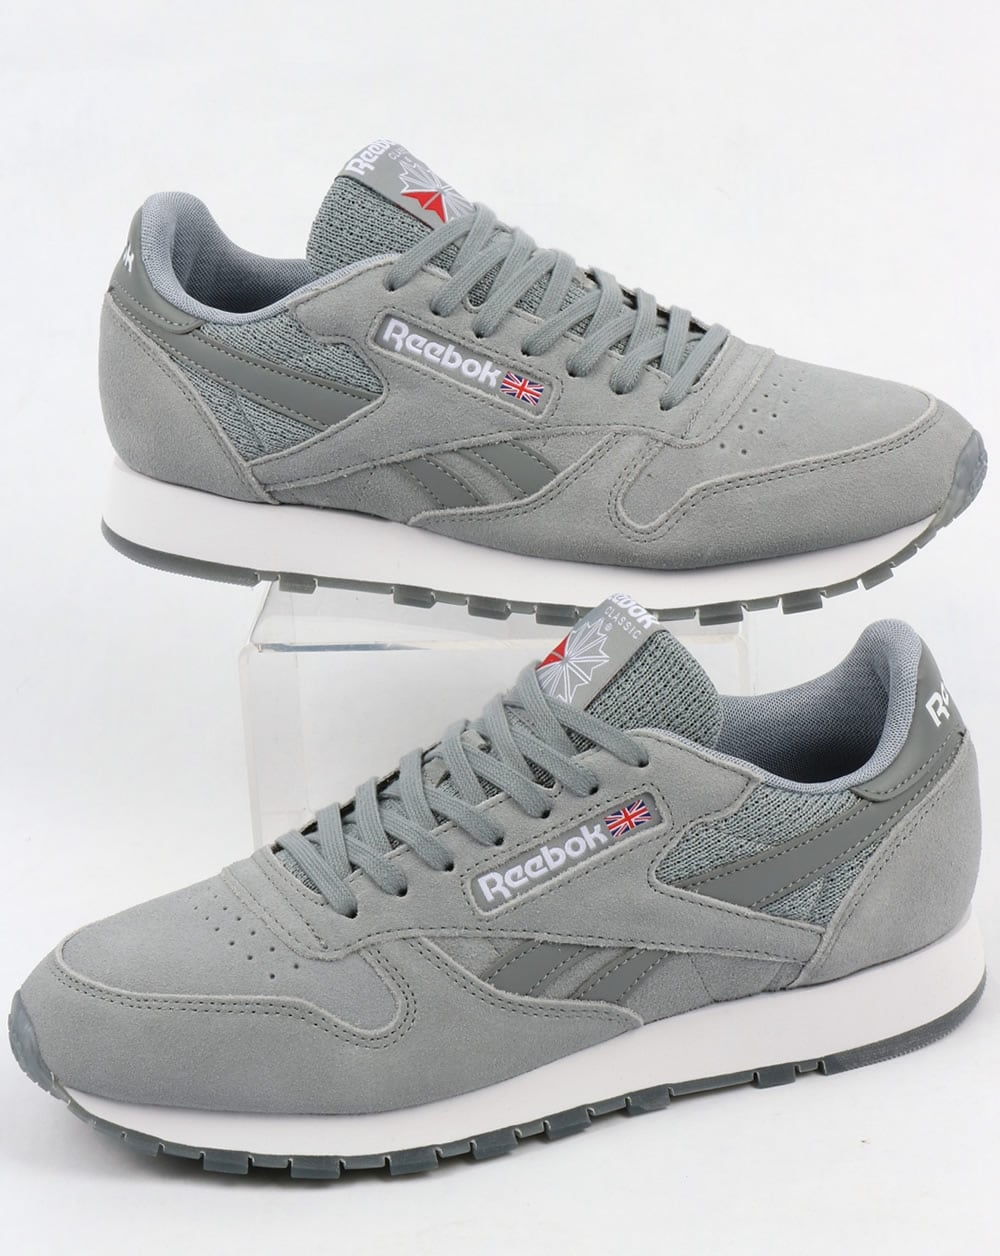 daeaef92be2 Reebok Reebok Classic Leather NM Trainers Flint Grey White